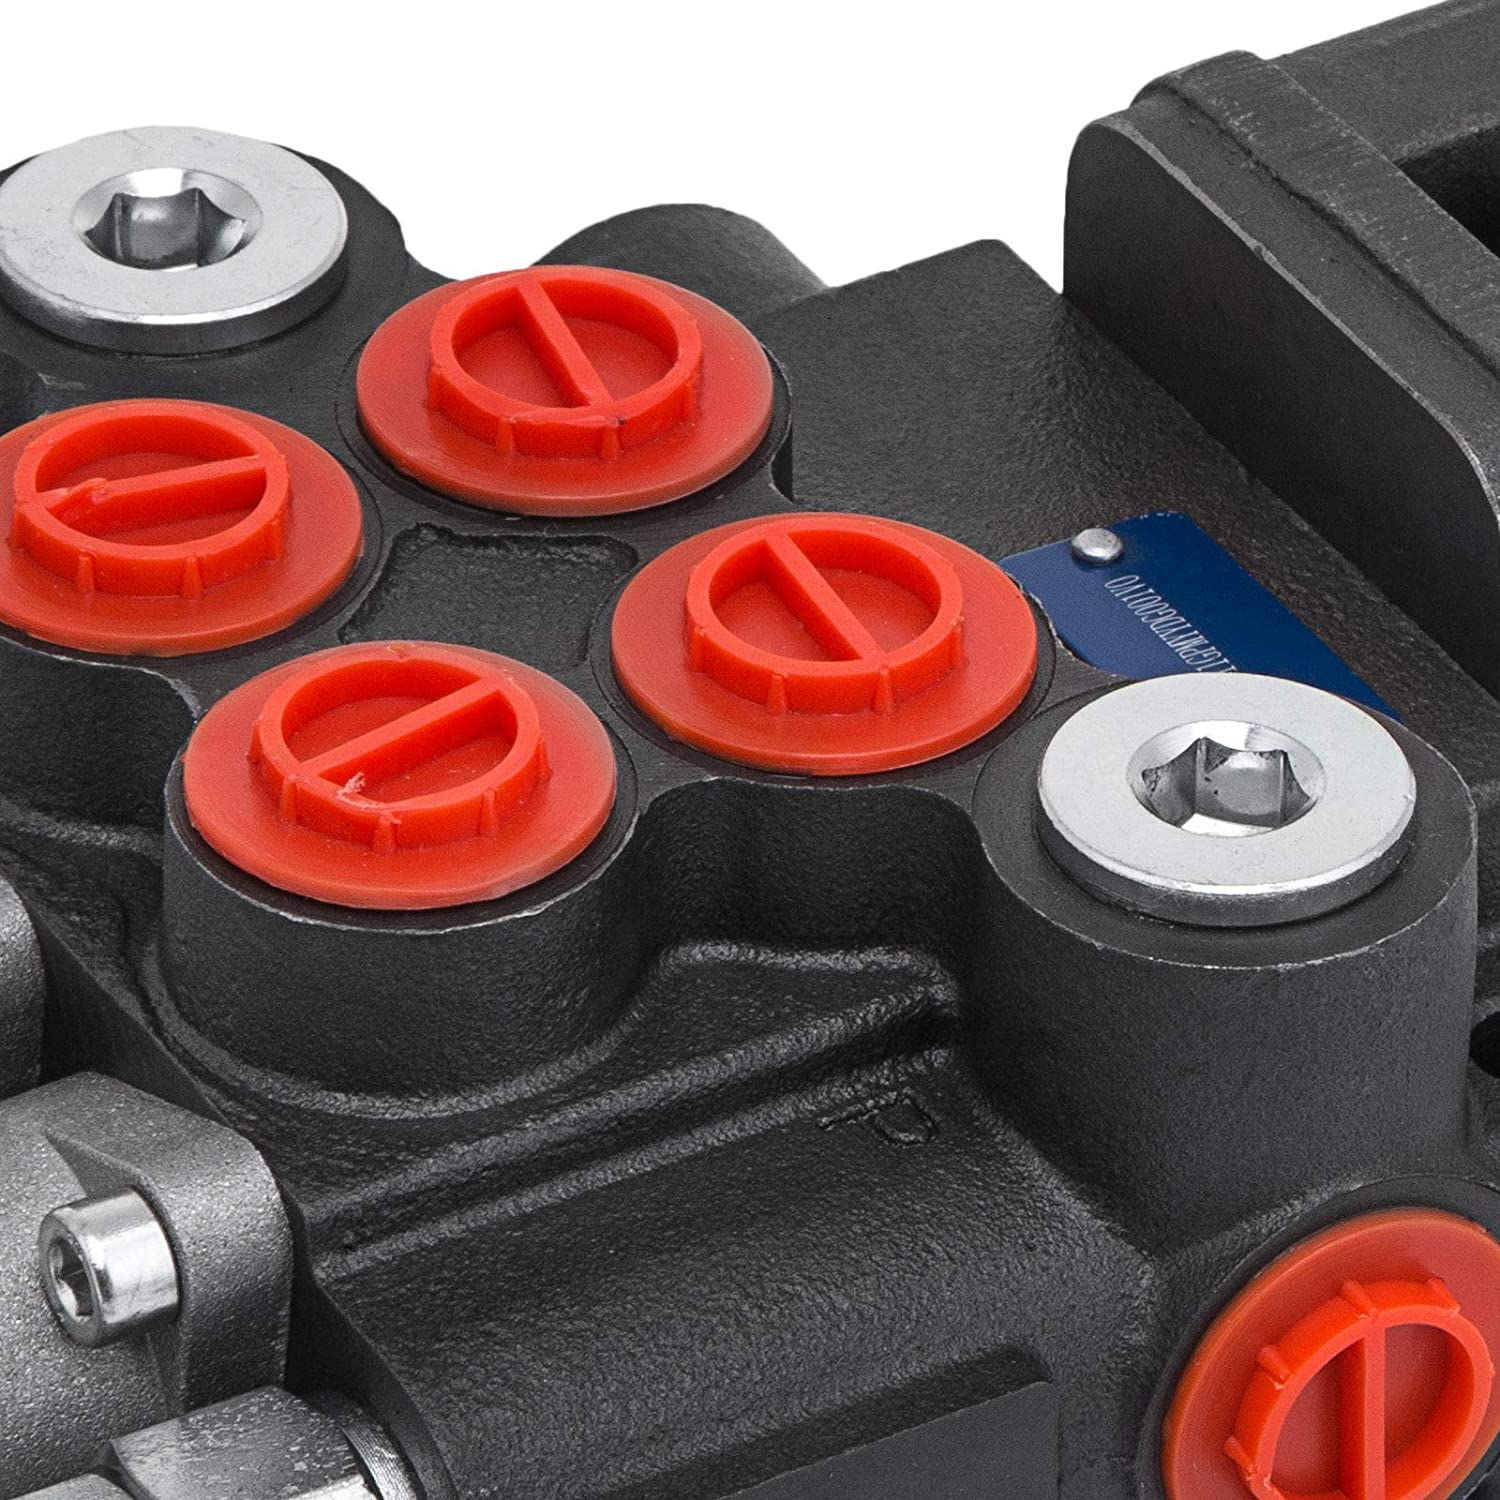 Mophor 2 Spool Hydraulic Joystick Control Valve 11gpm Double Acting Cylinder Spool Bsp